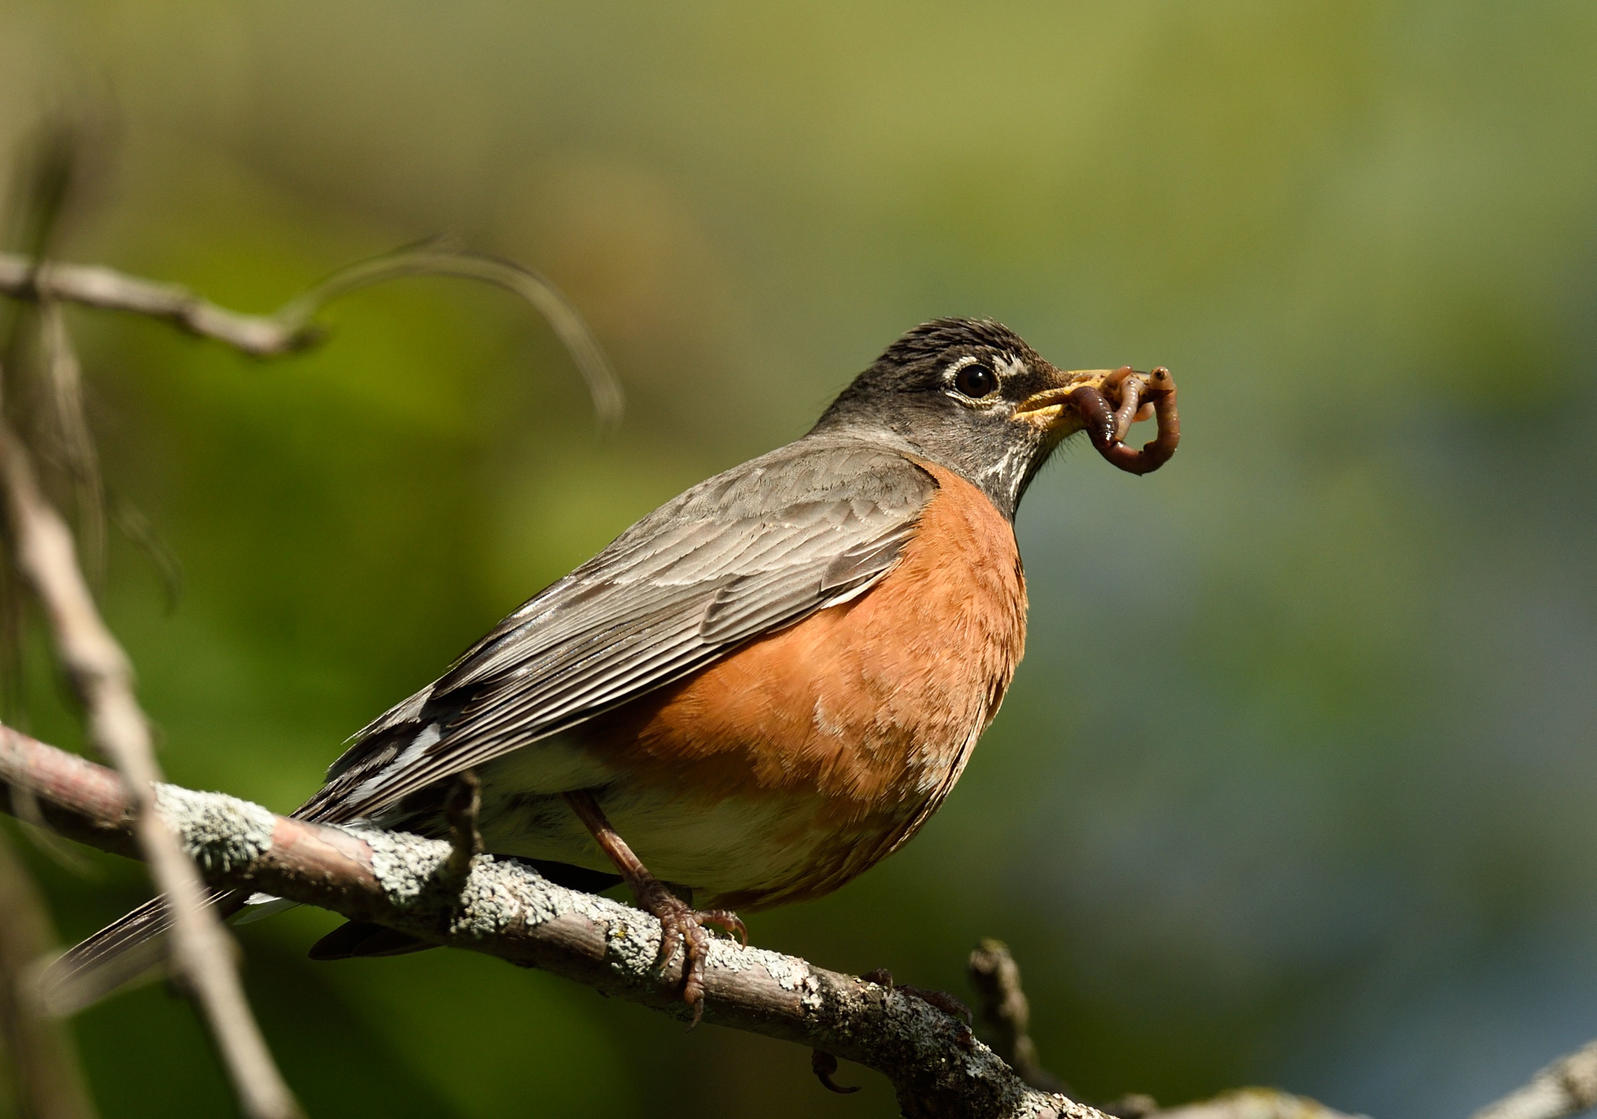 Early bird, shmearly bird. The American Robin that knows when the relative humidity hits roughly 50 percent gets the worm(s). Dennis Derby/Audubon Photography Awards